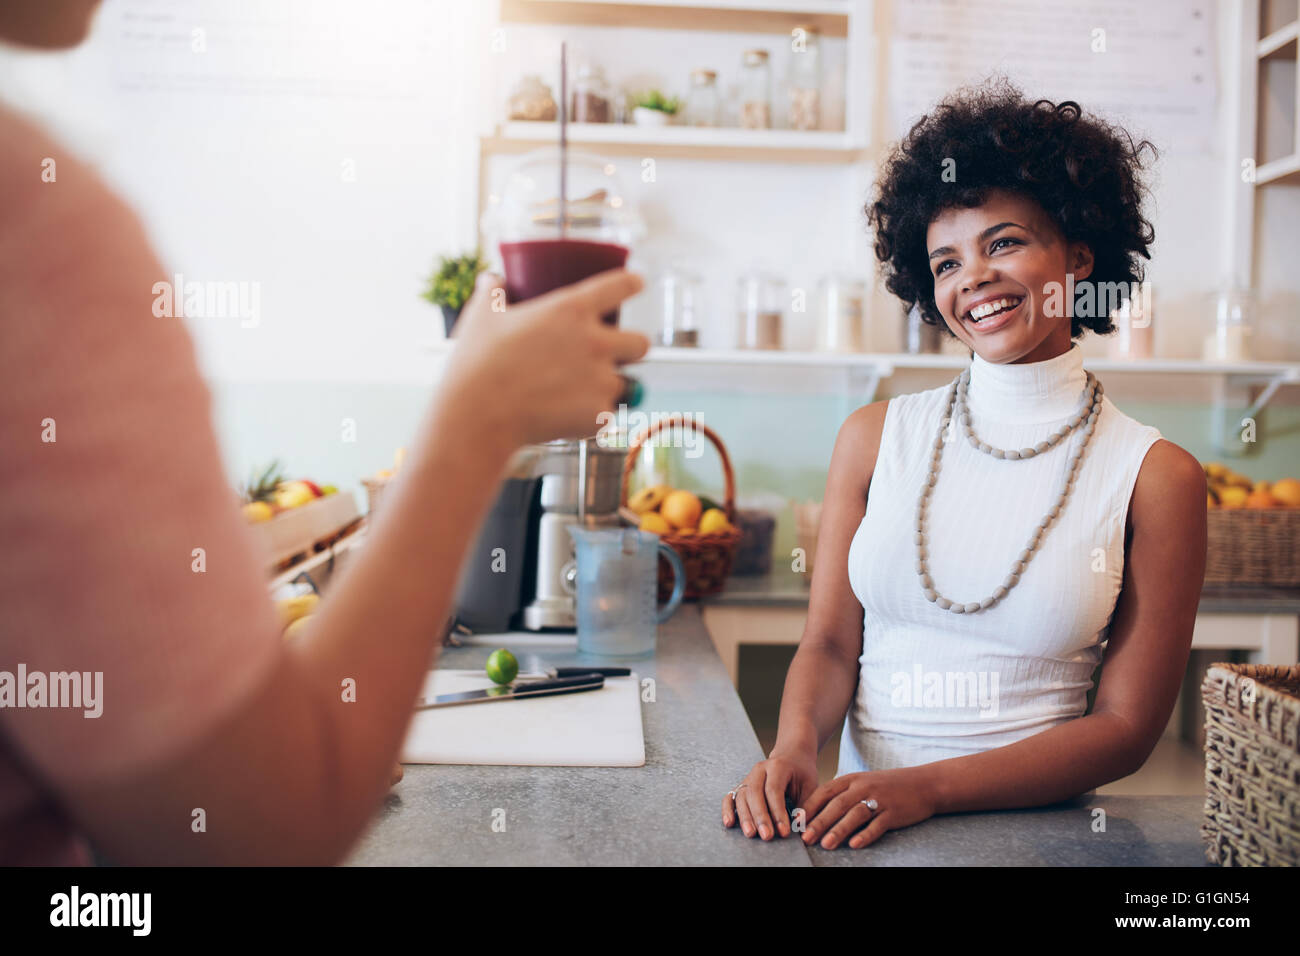 Juice bar owner with female customer holding a glass of fresh juice. African woman standing behind the counter and - Stock Image